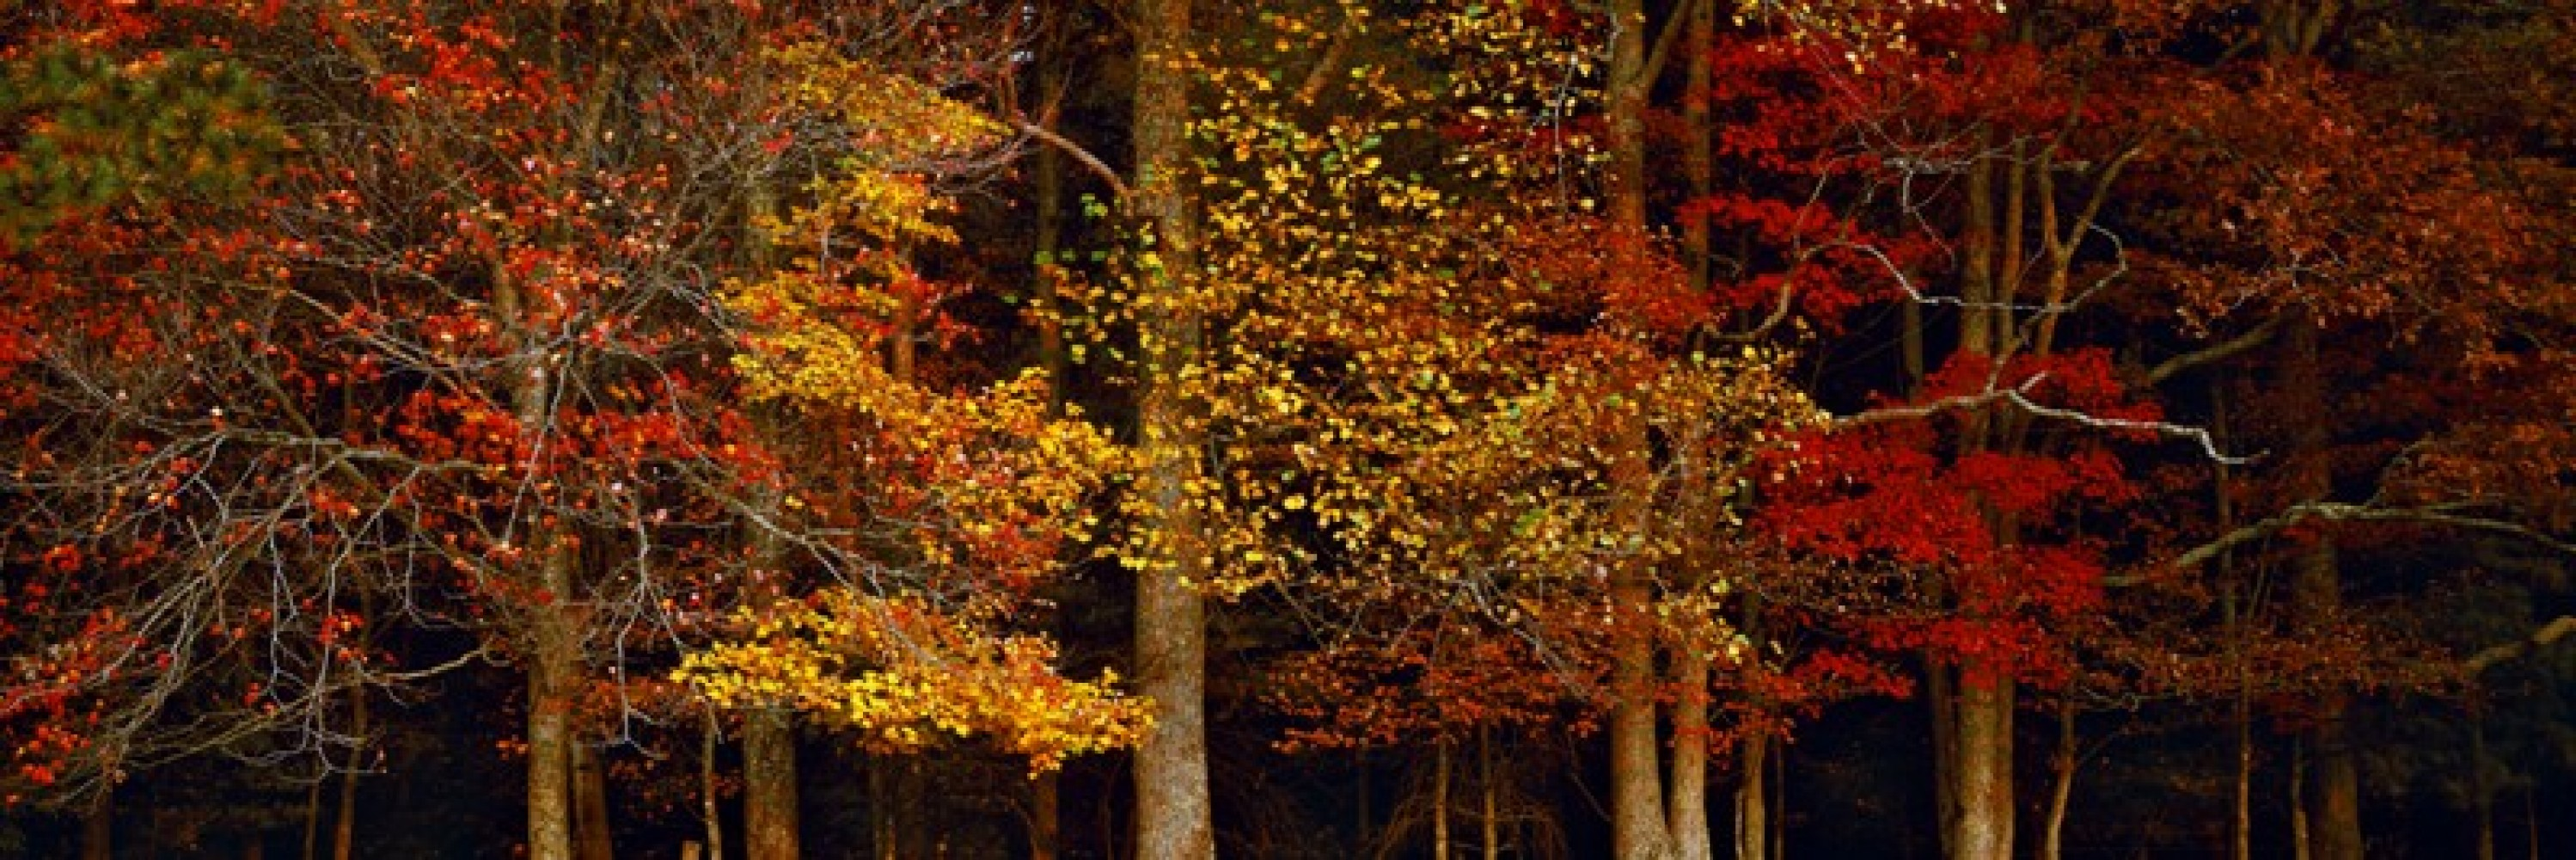 Peter Lik Art For Sale